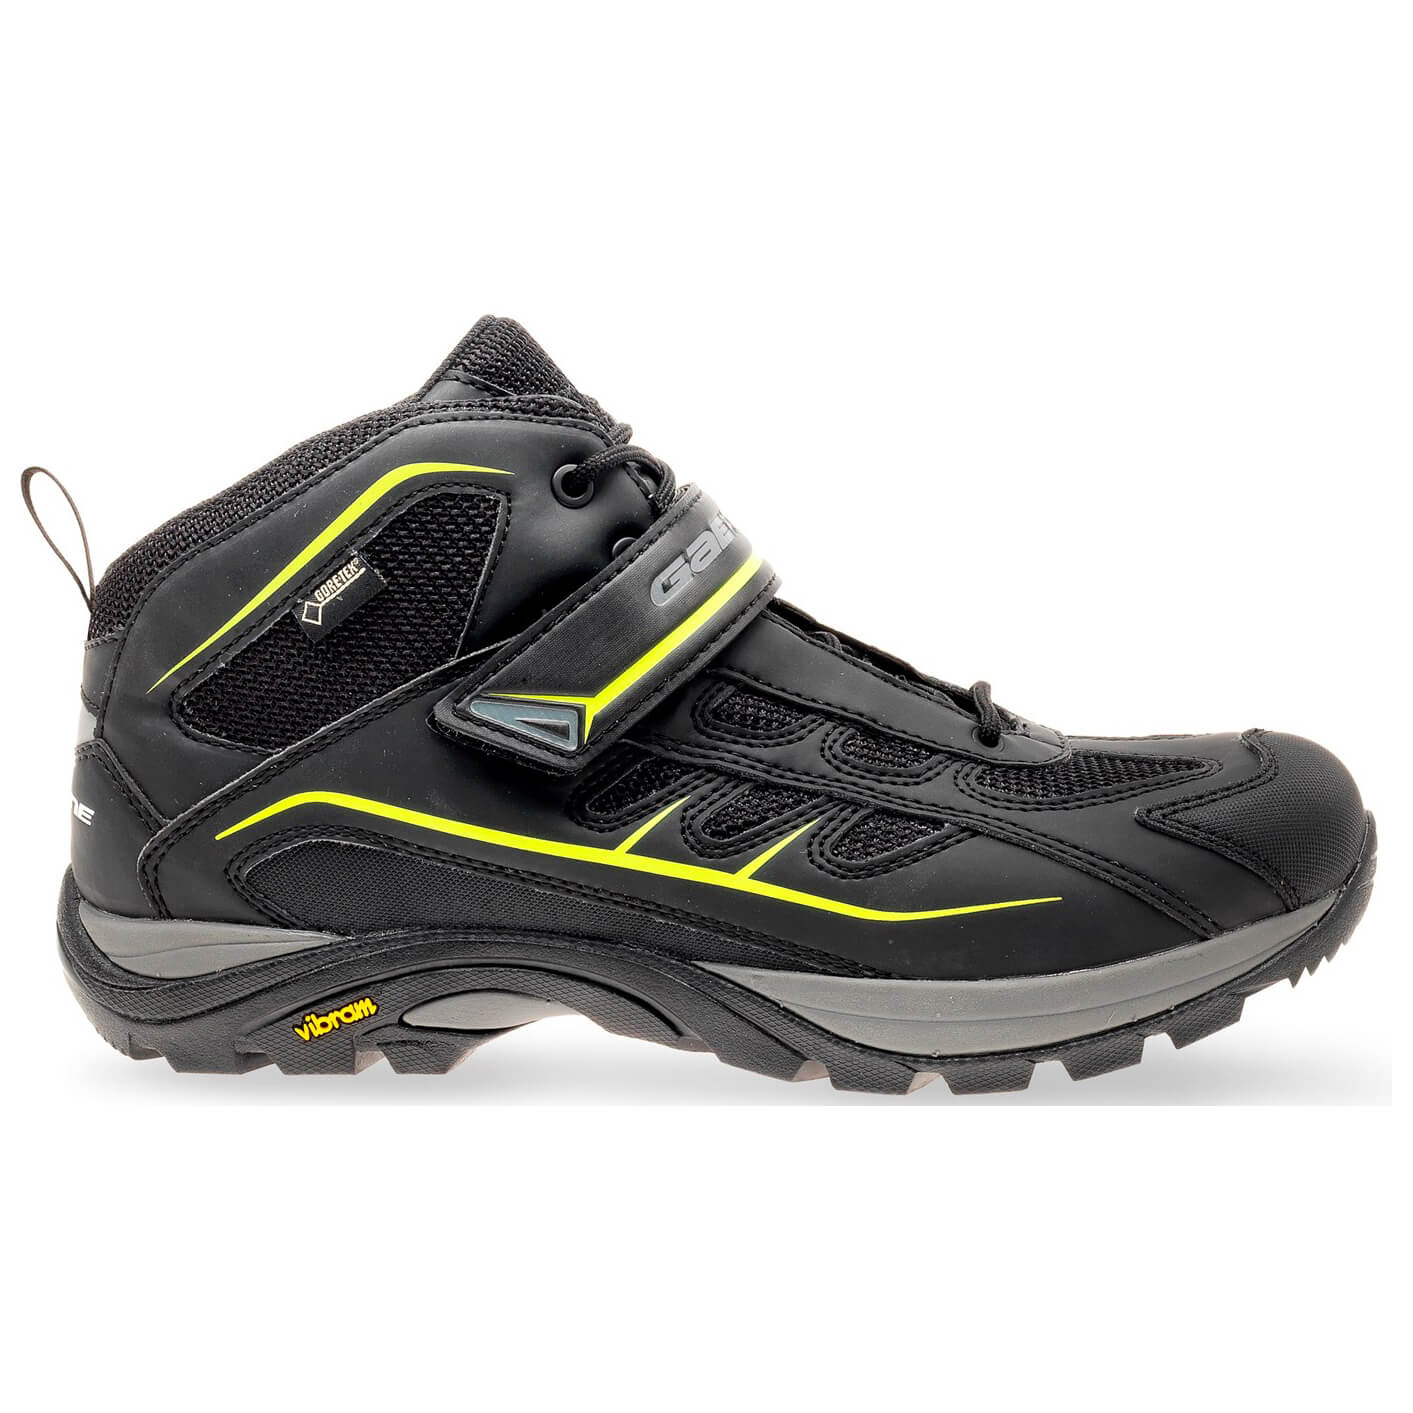 Gaerne G Mid Gore Tex Cycling Shoes Men S Free Eu Delivery